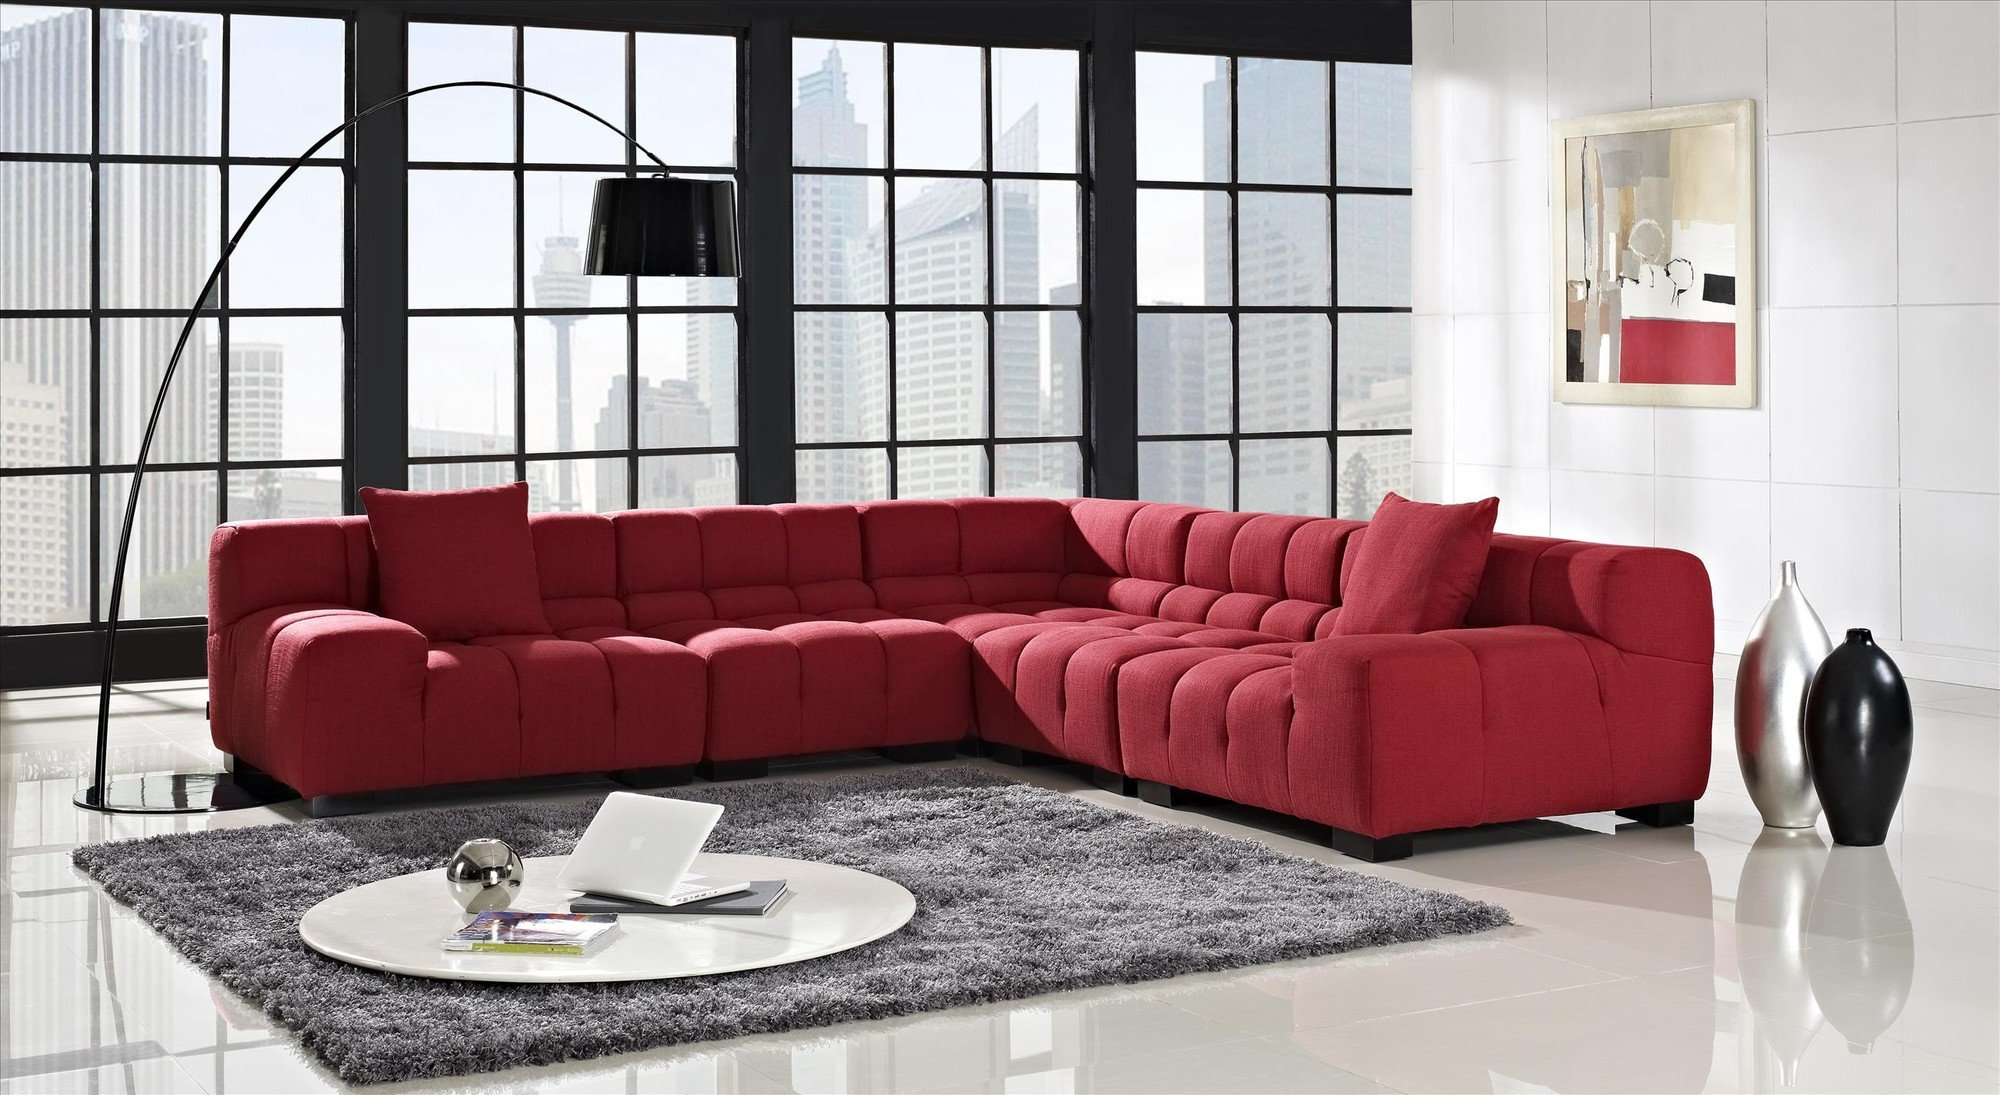 Contemporary Living Room sofas Inspirational How to Choose Modern Sectional sofas for Your Home Midcityeast